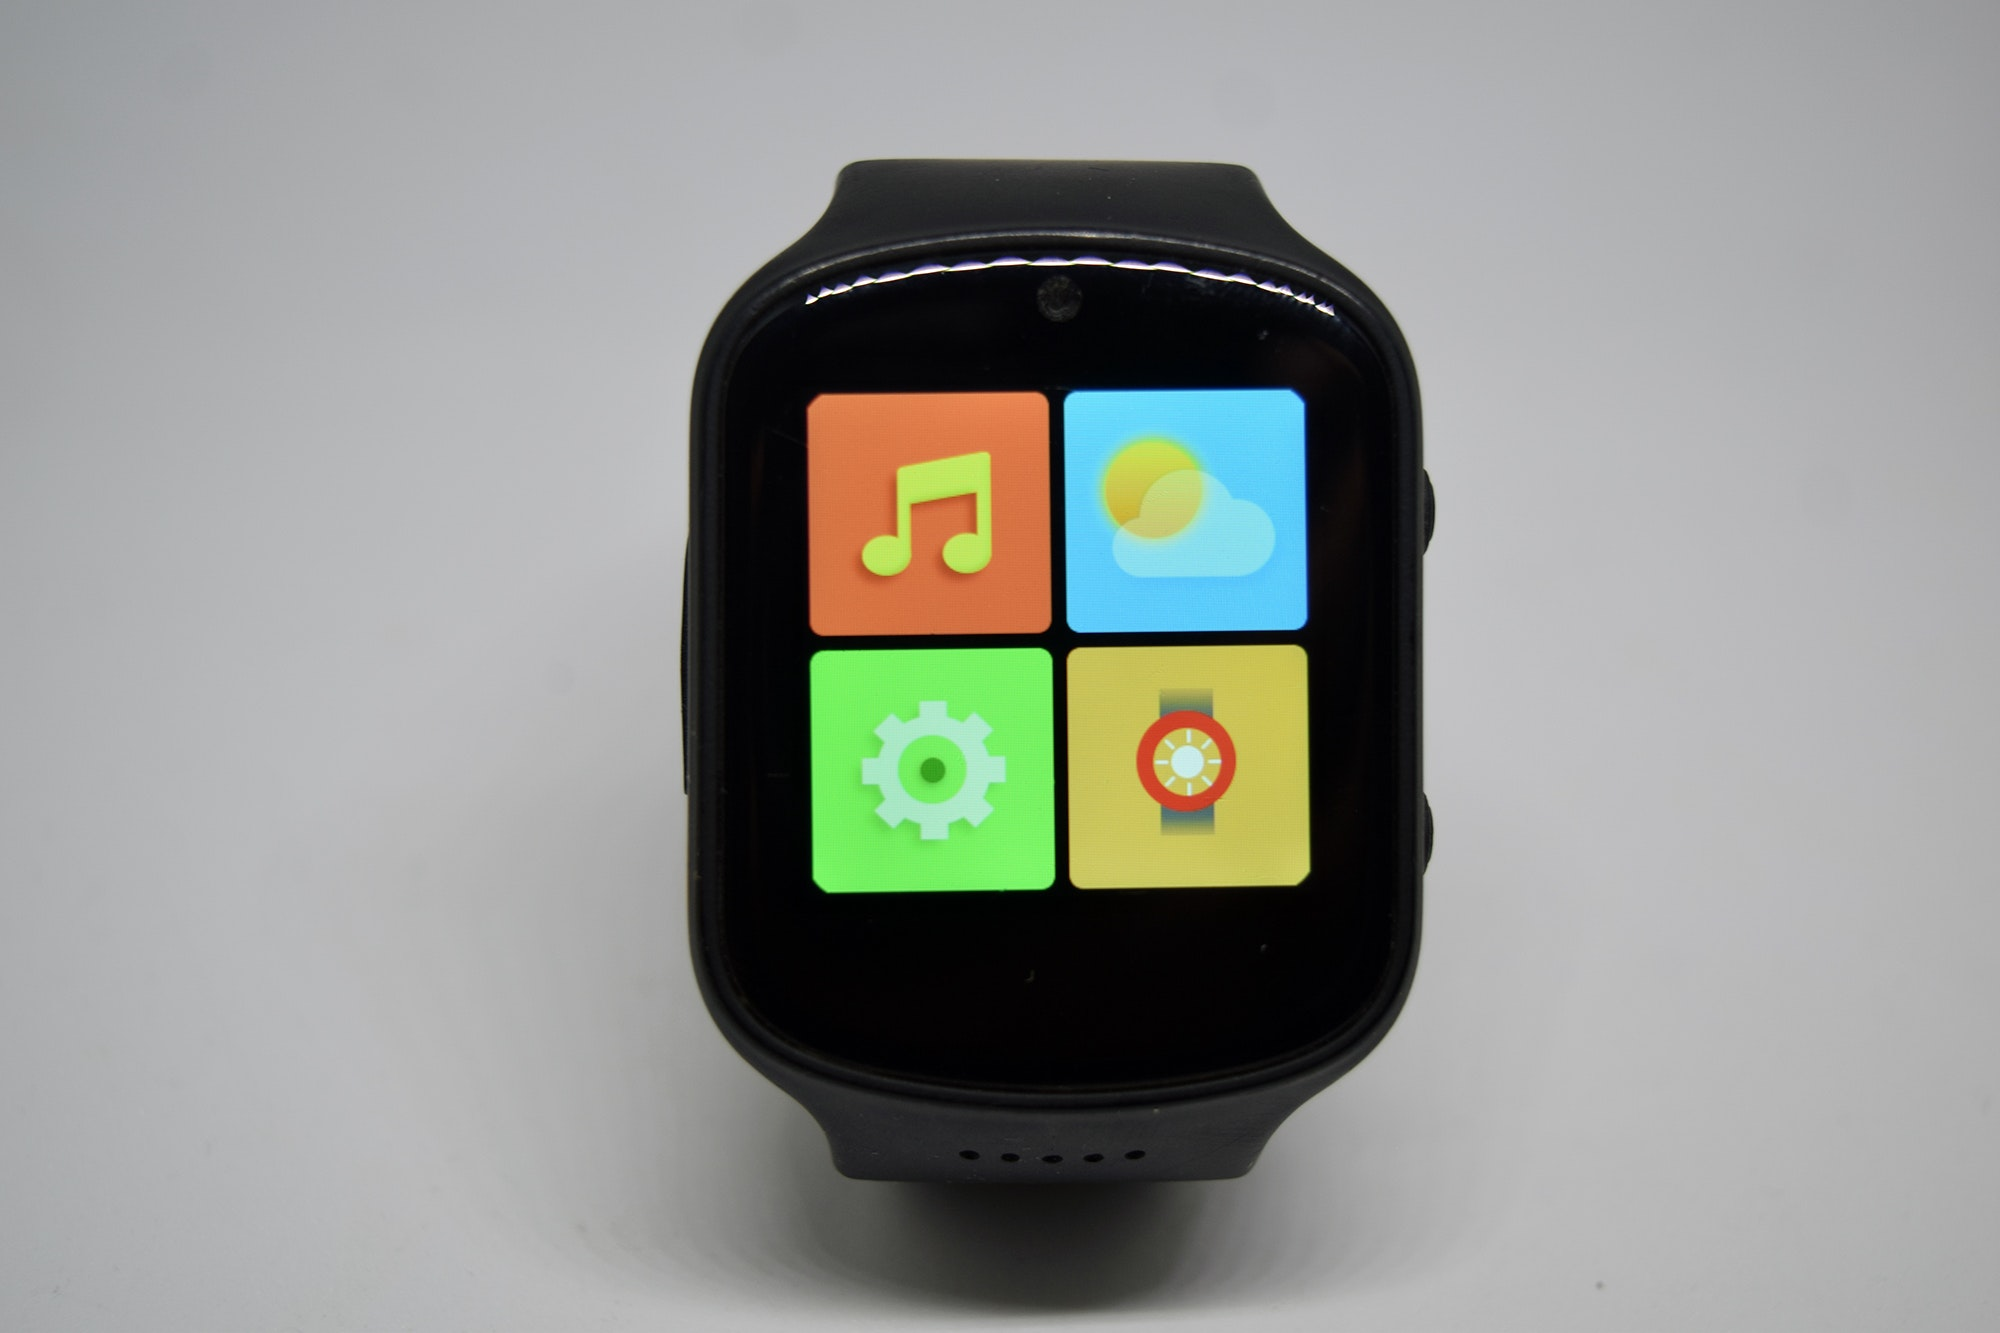 Global Kids' Smartwatch Market Size, Share, Trends, Growth, Demand and Estimates to 2023